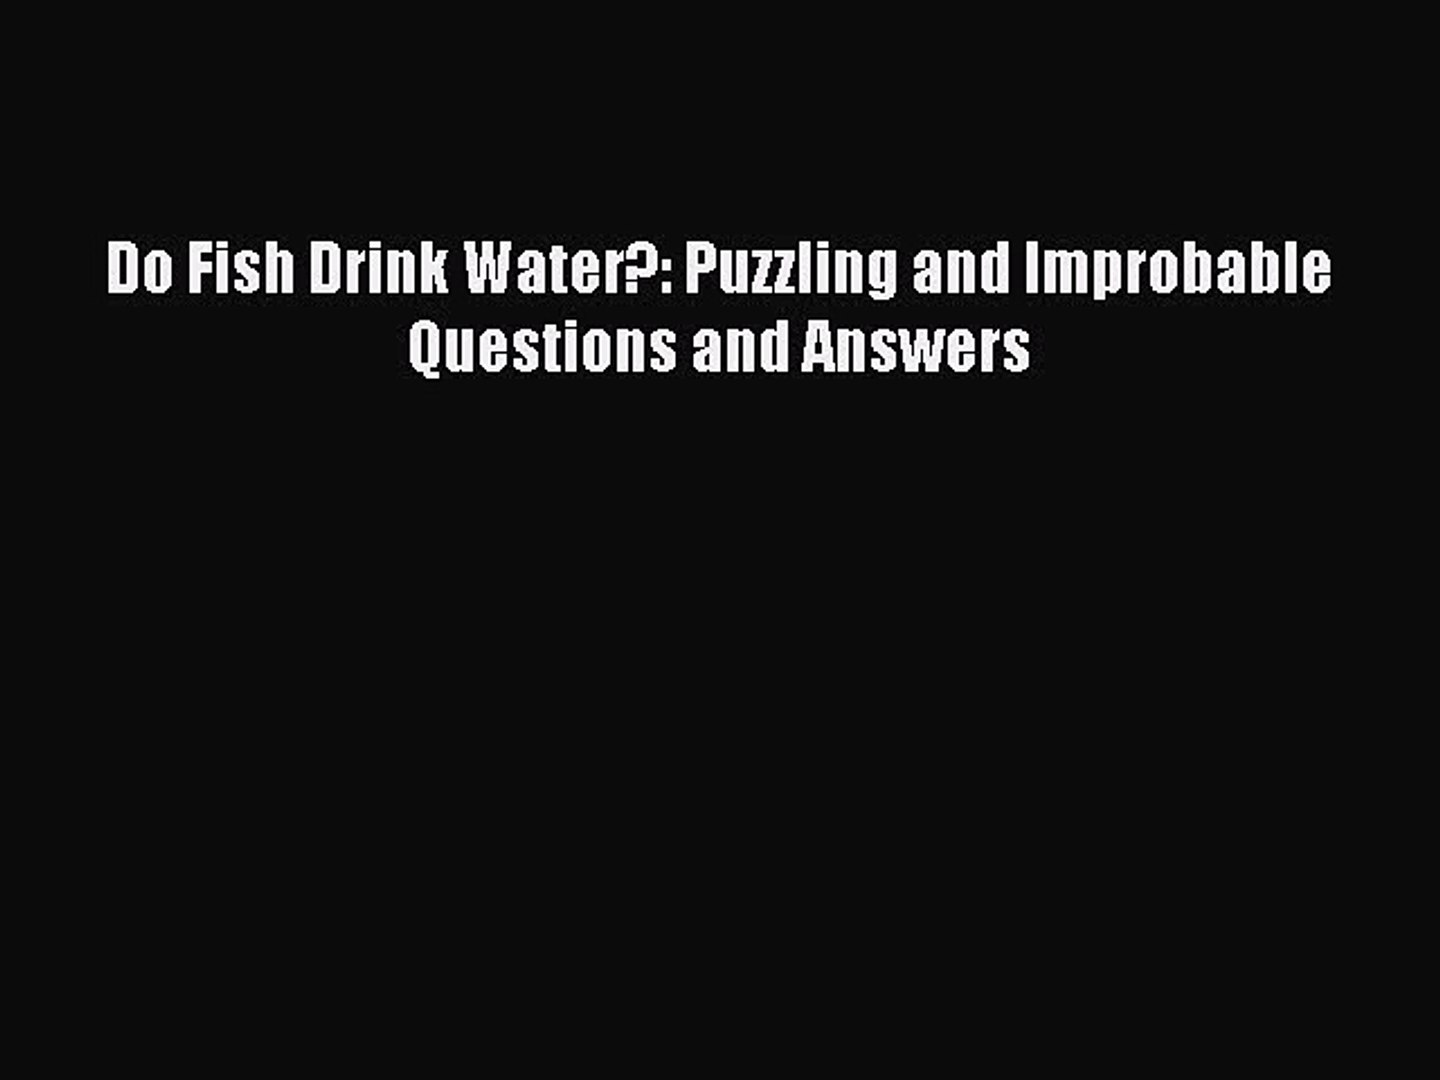 Download Do Fish Drink Water?: Puzzling and Improbable Questions and Answers PDF Free